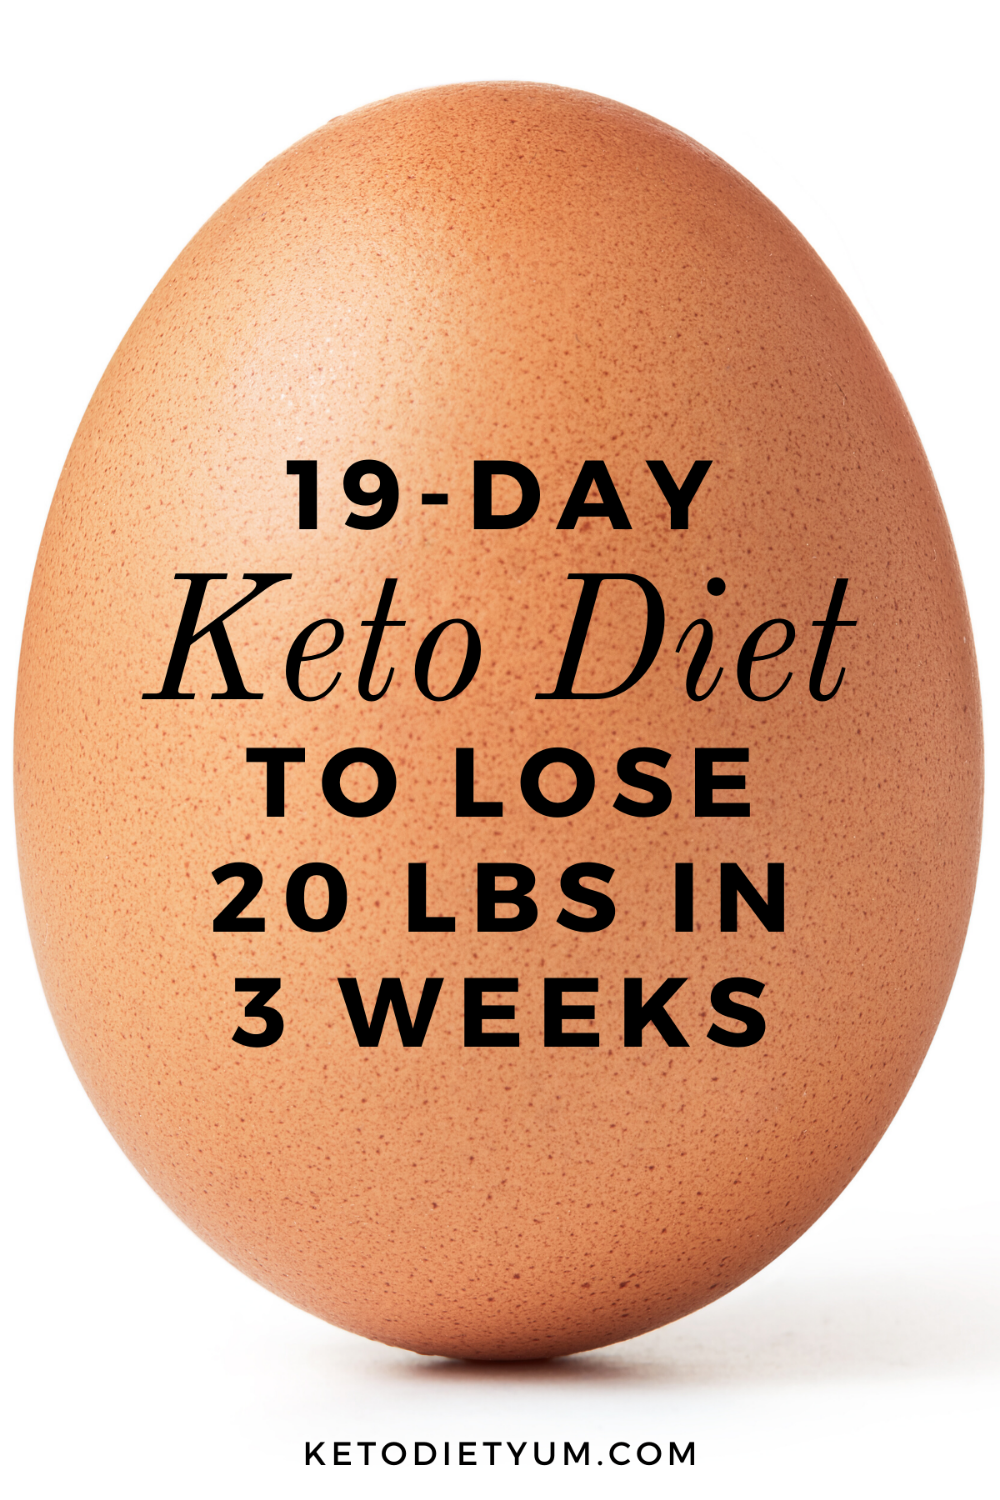 19-Day Keto Diet Meal Plan and Menu for Beginners Weight Loss